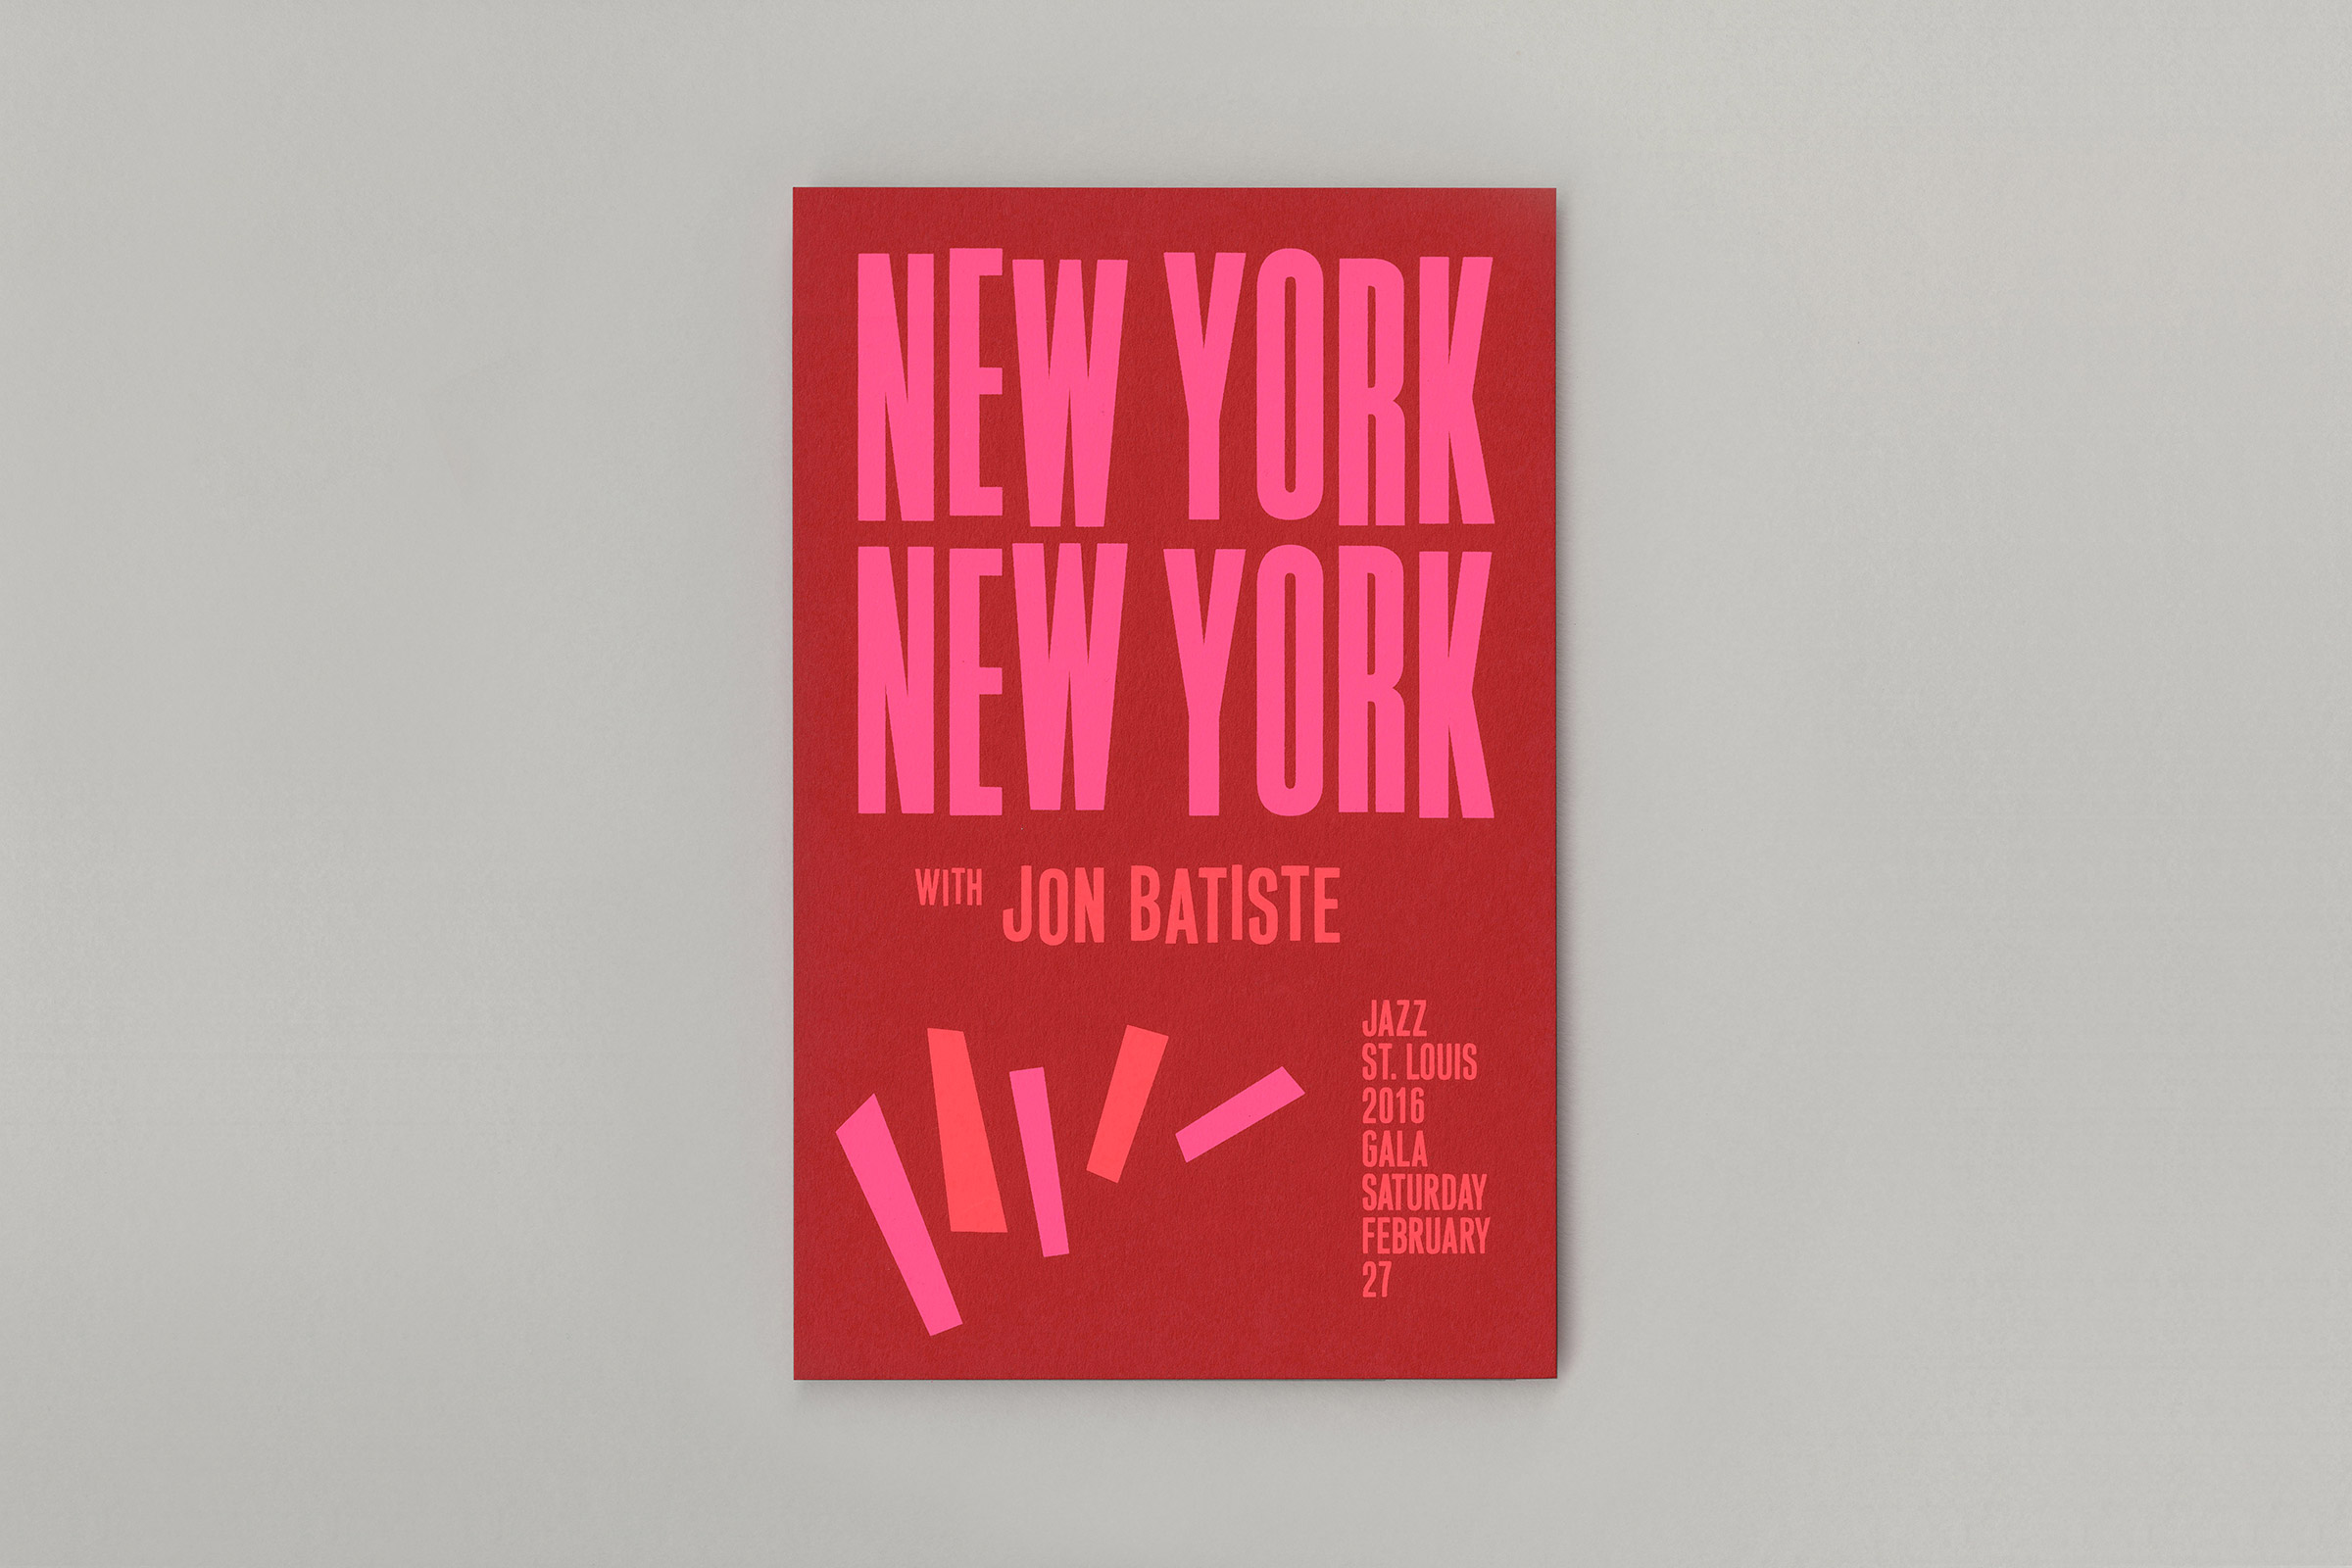 New York New York, Jazz St. Louis - Fonts In Use